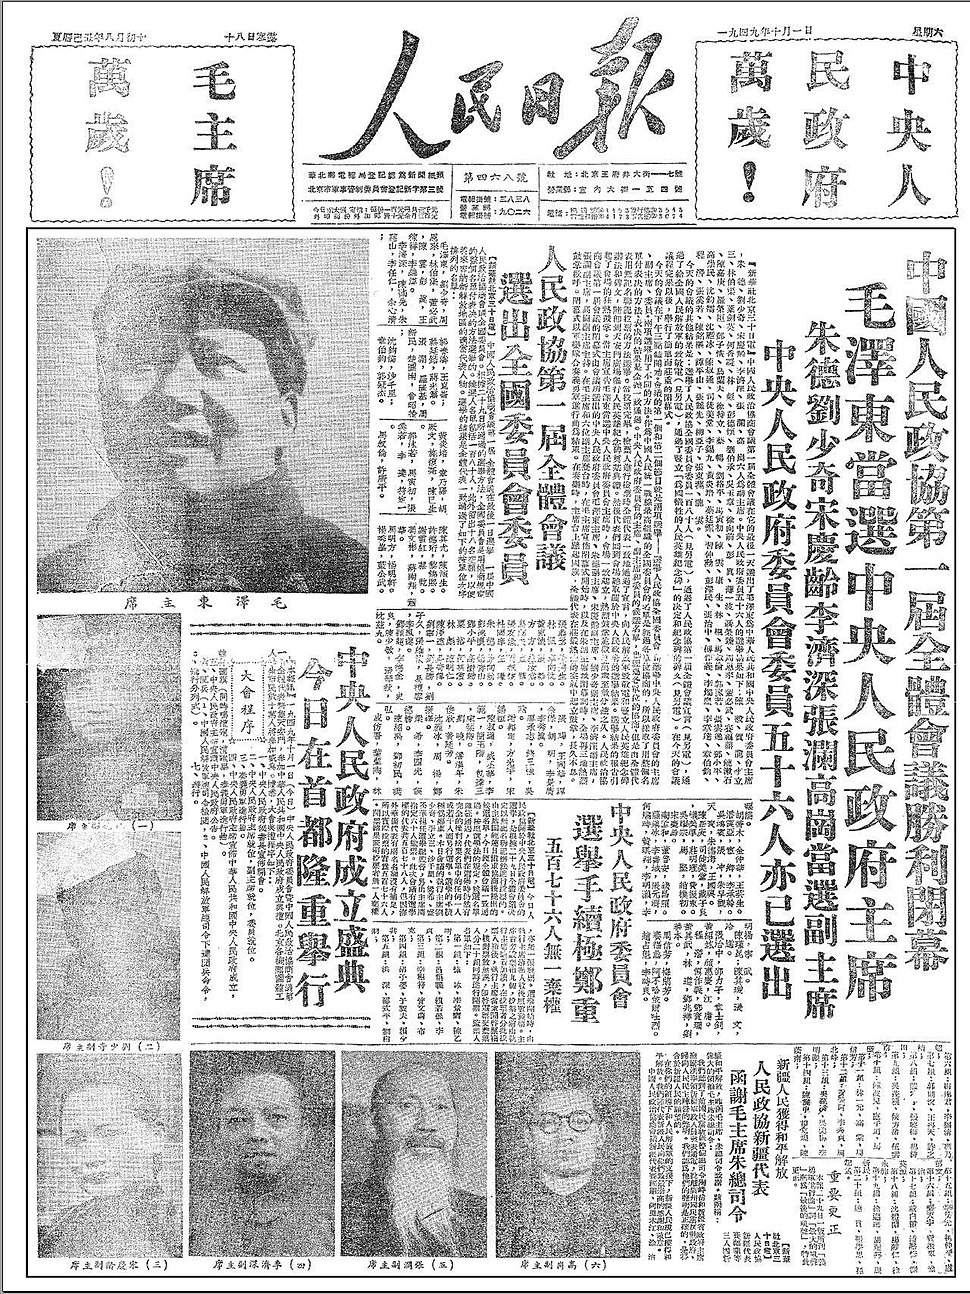 People%27s daily 1 Oct 1949